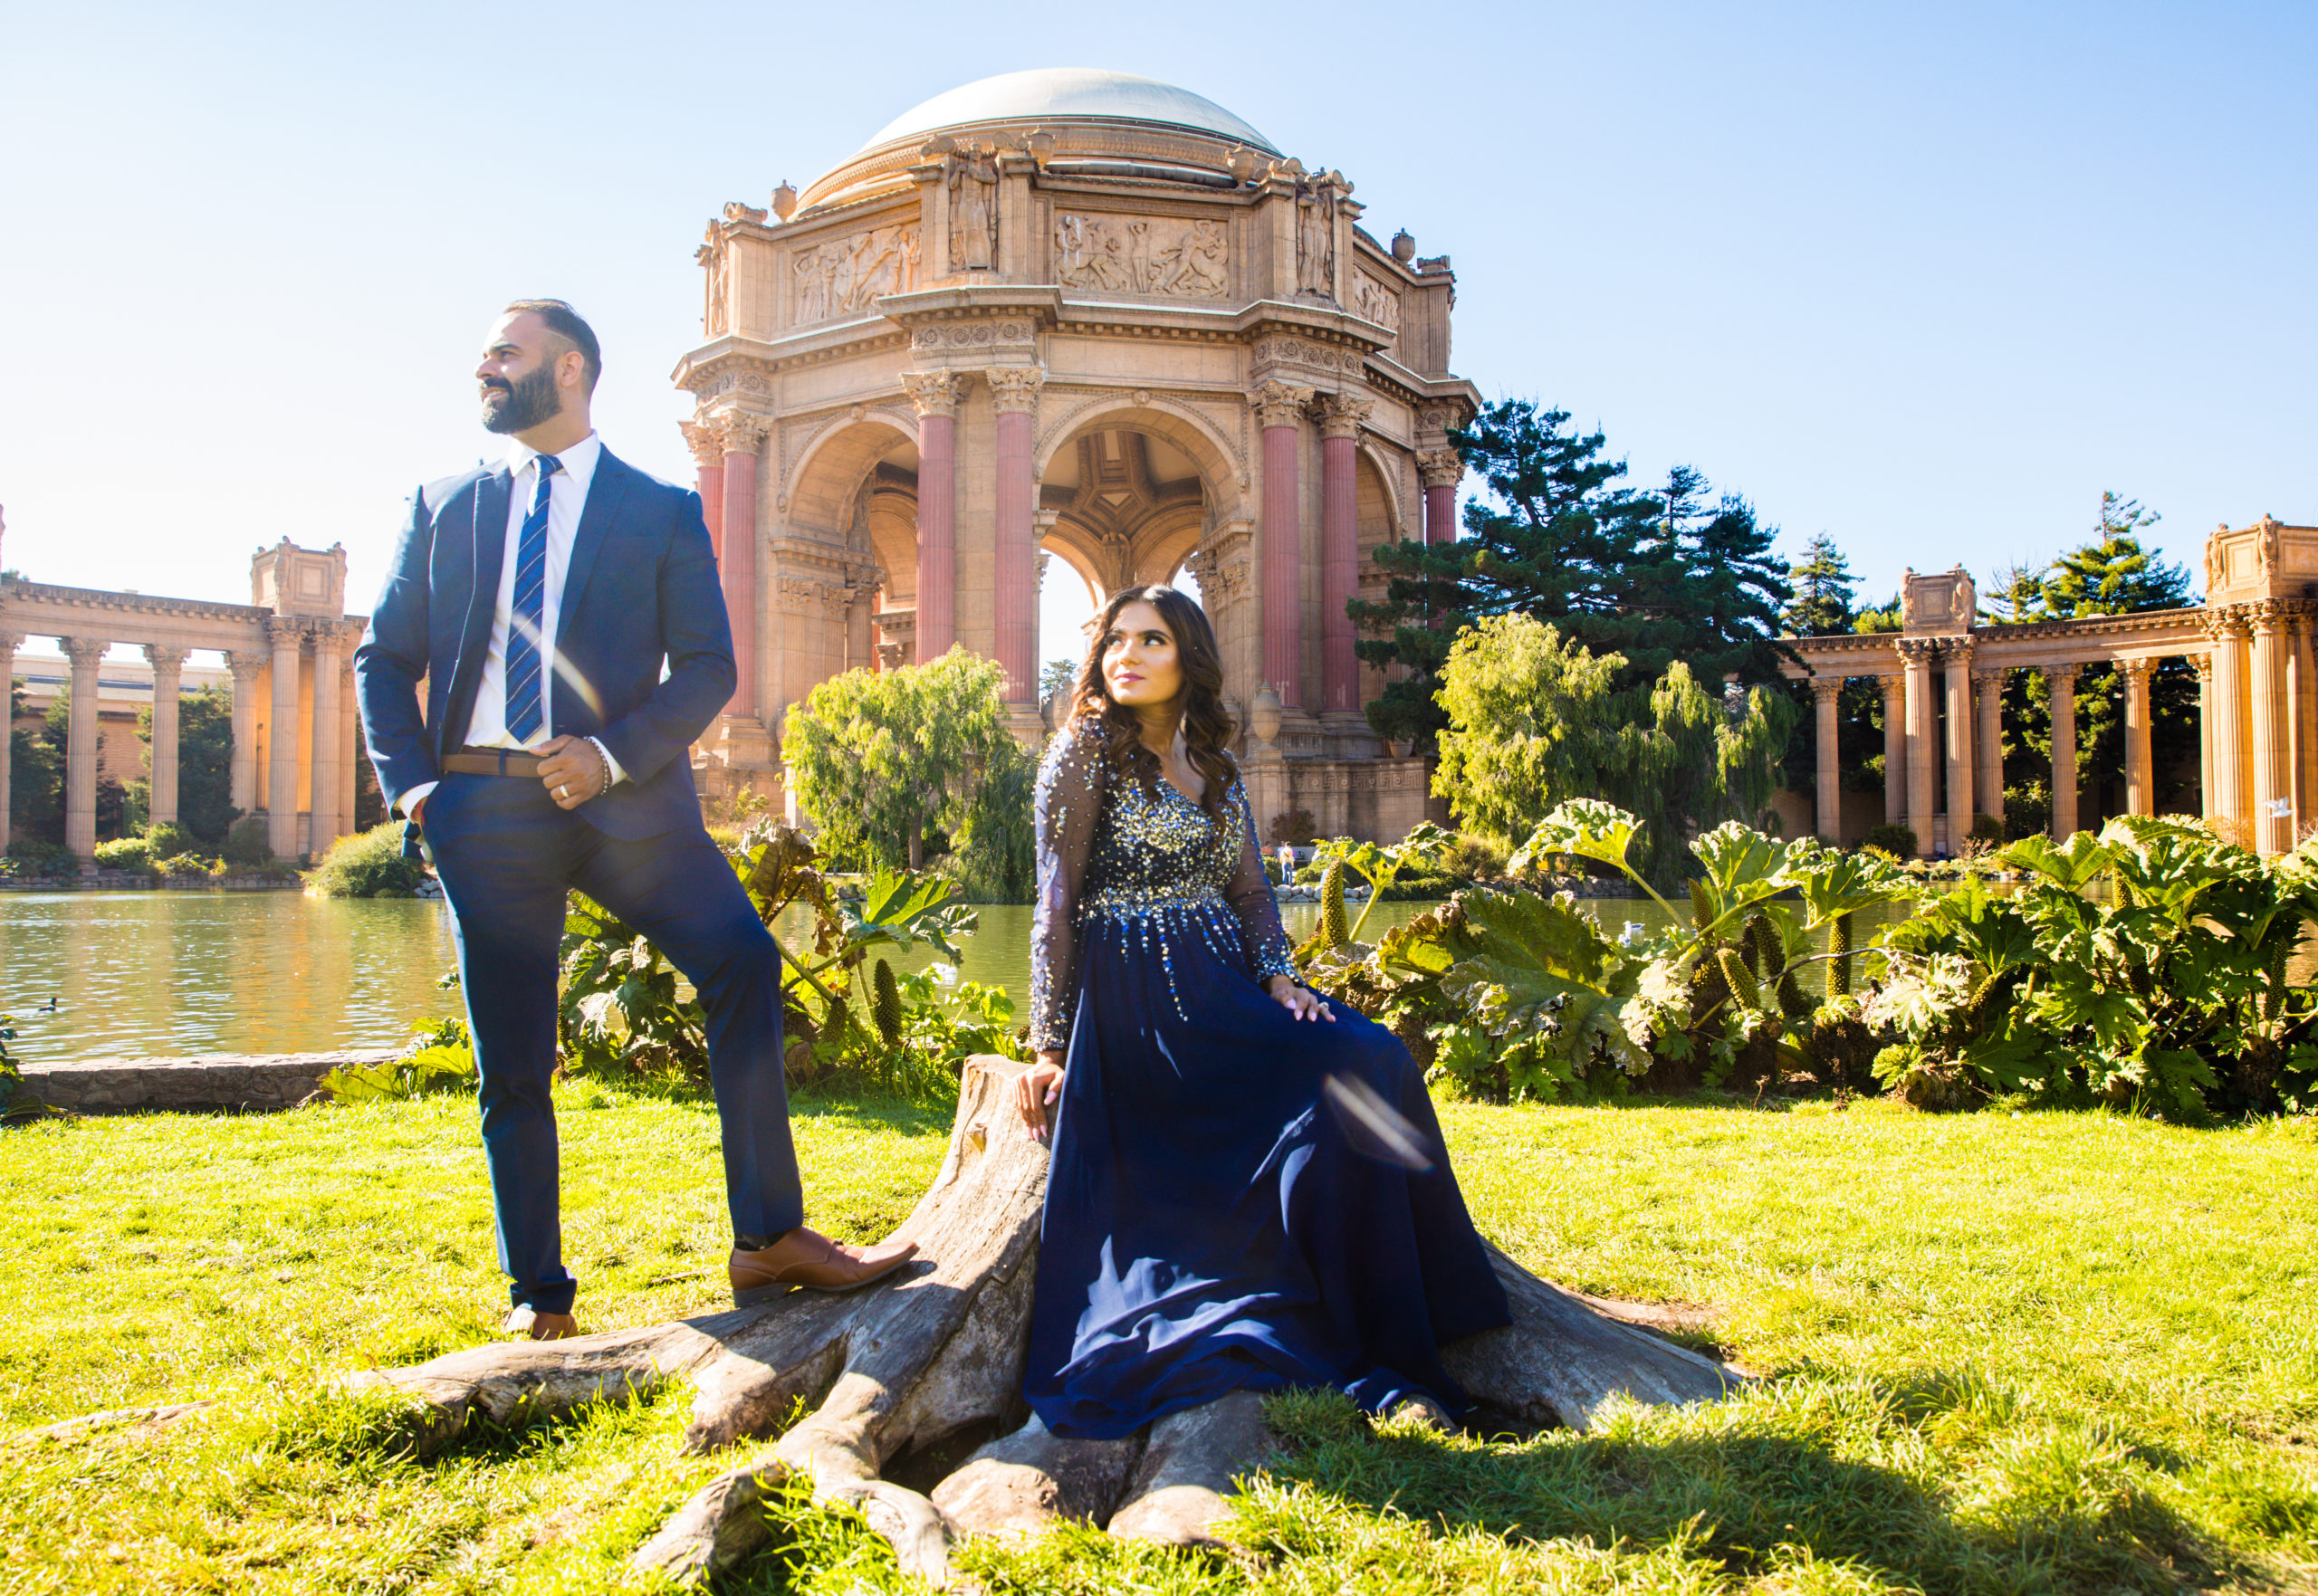 Palace of Fine Arts San Francisco City| Photography and Cinematography | Indian Wedding Photographer | Motion 8 Films | Indian Wedding Photography | Cinematography